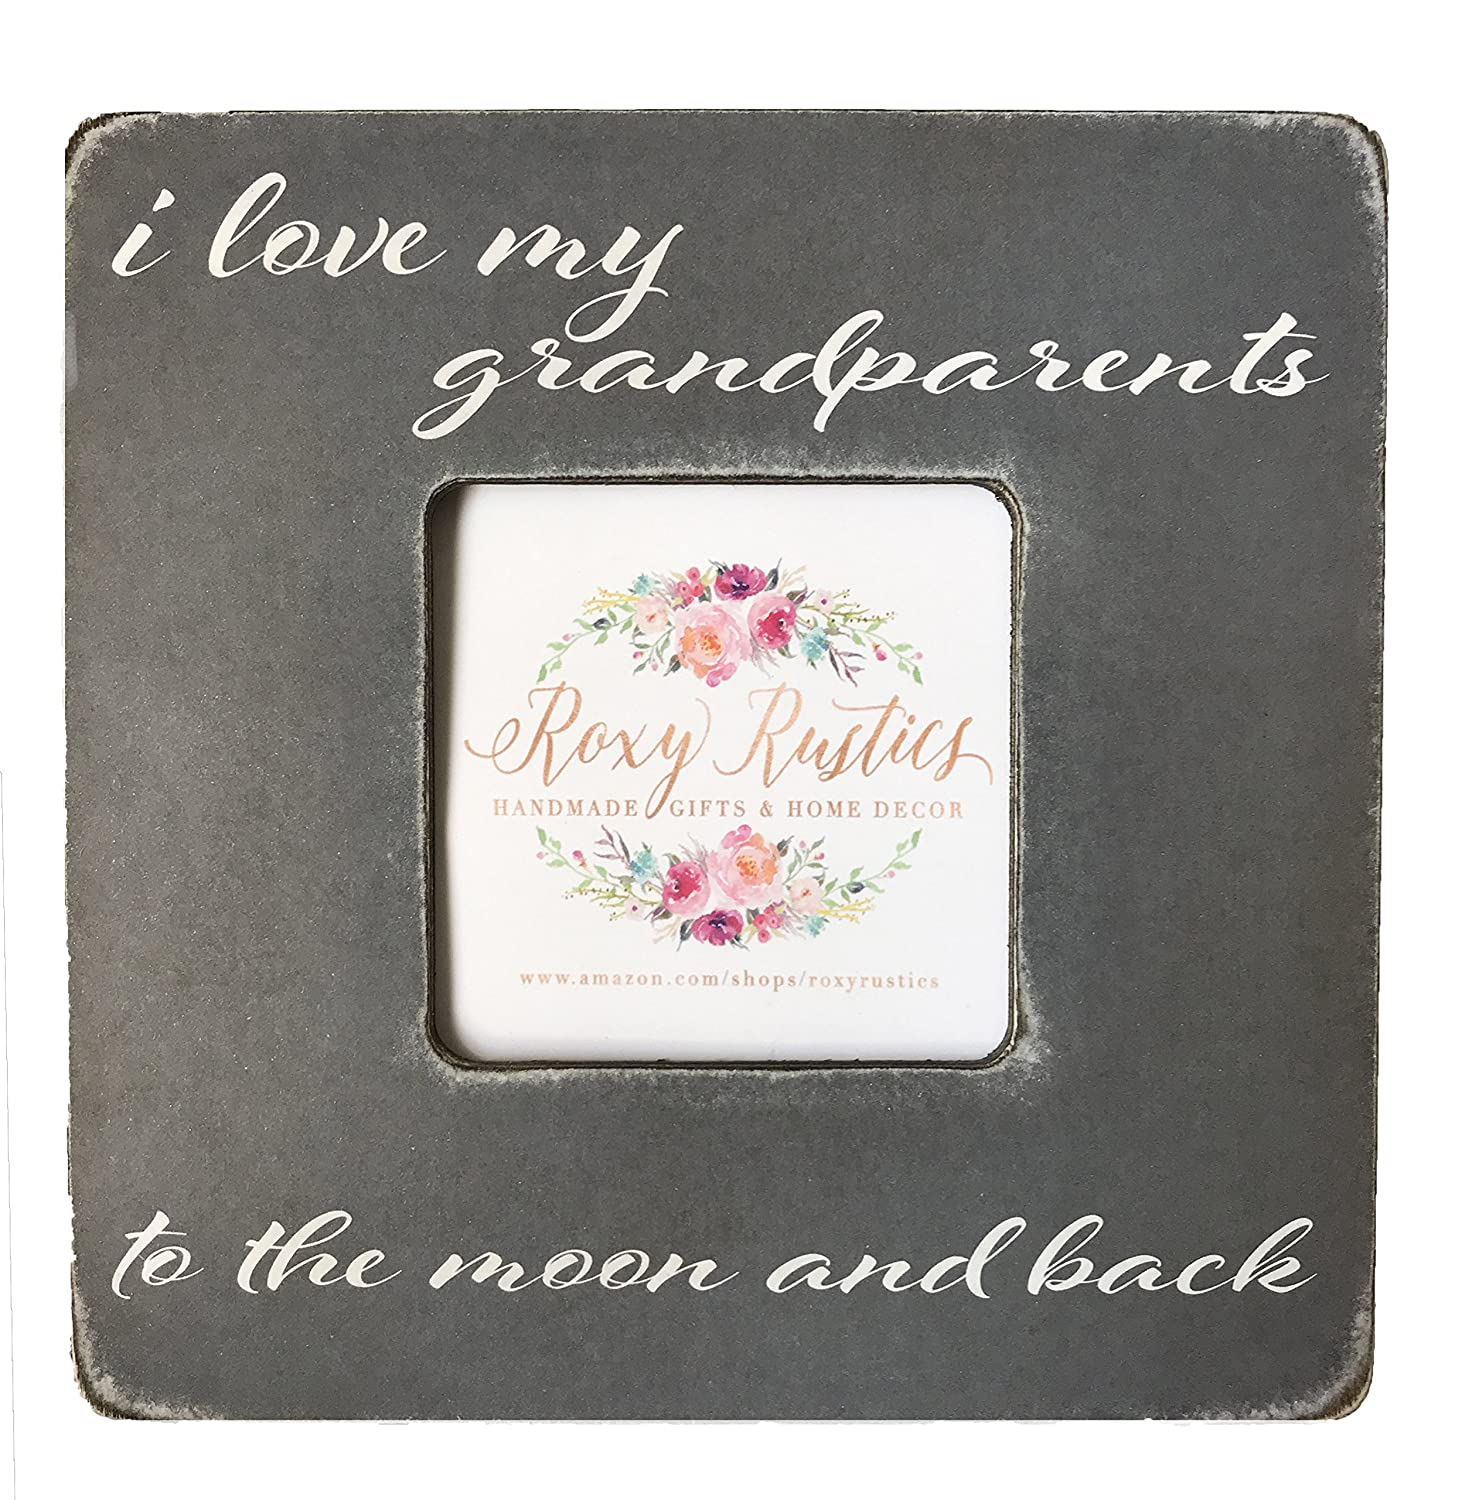 Amazoncom 8x8 Desktop Picture Frame Gift For Grandparents I Love